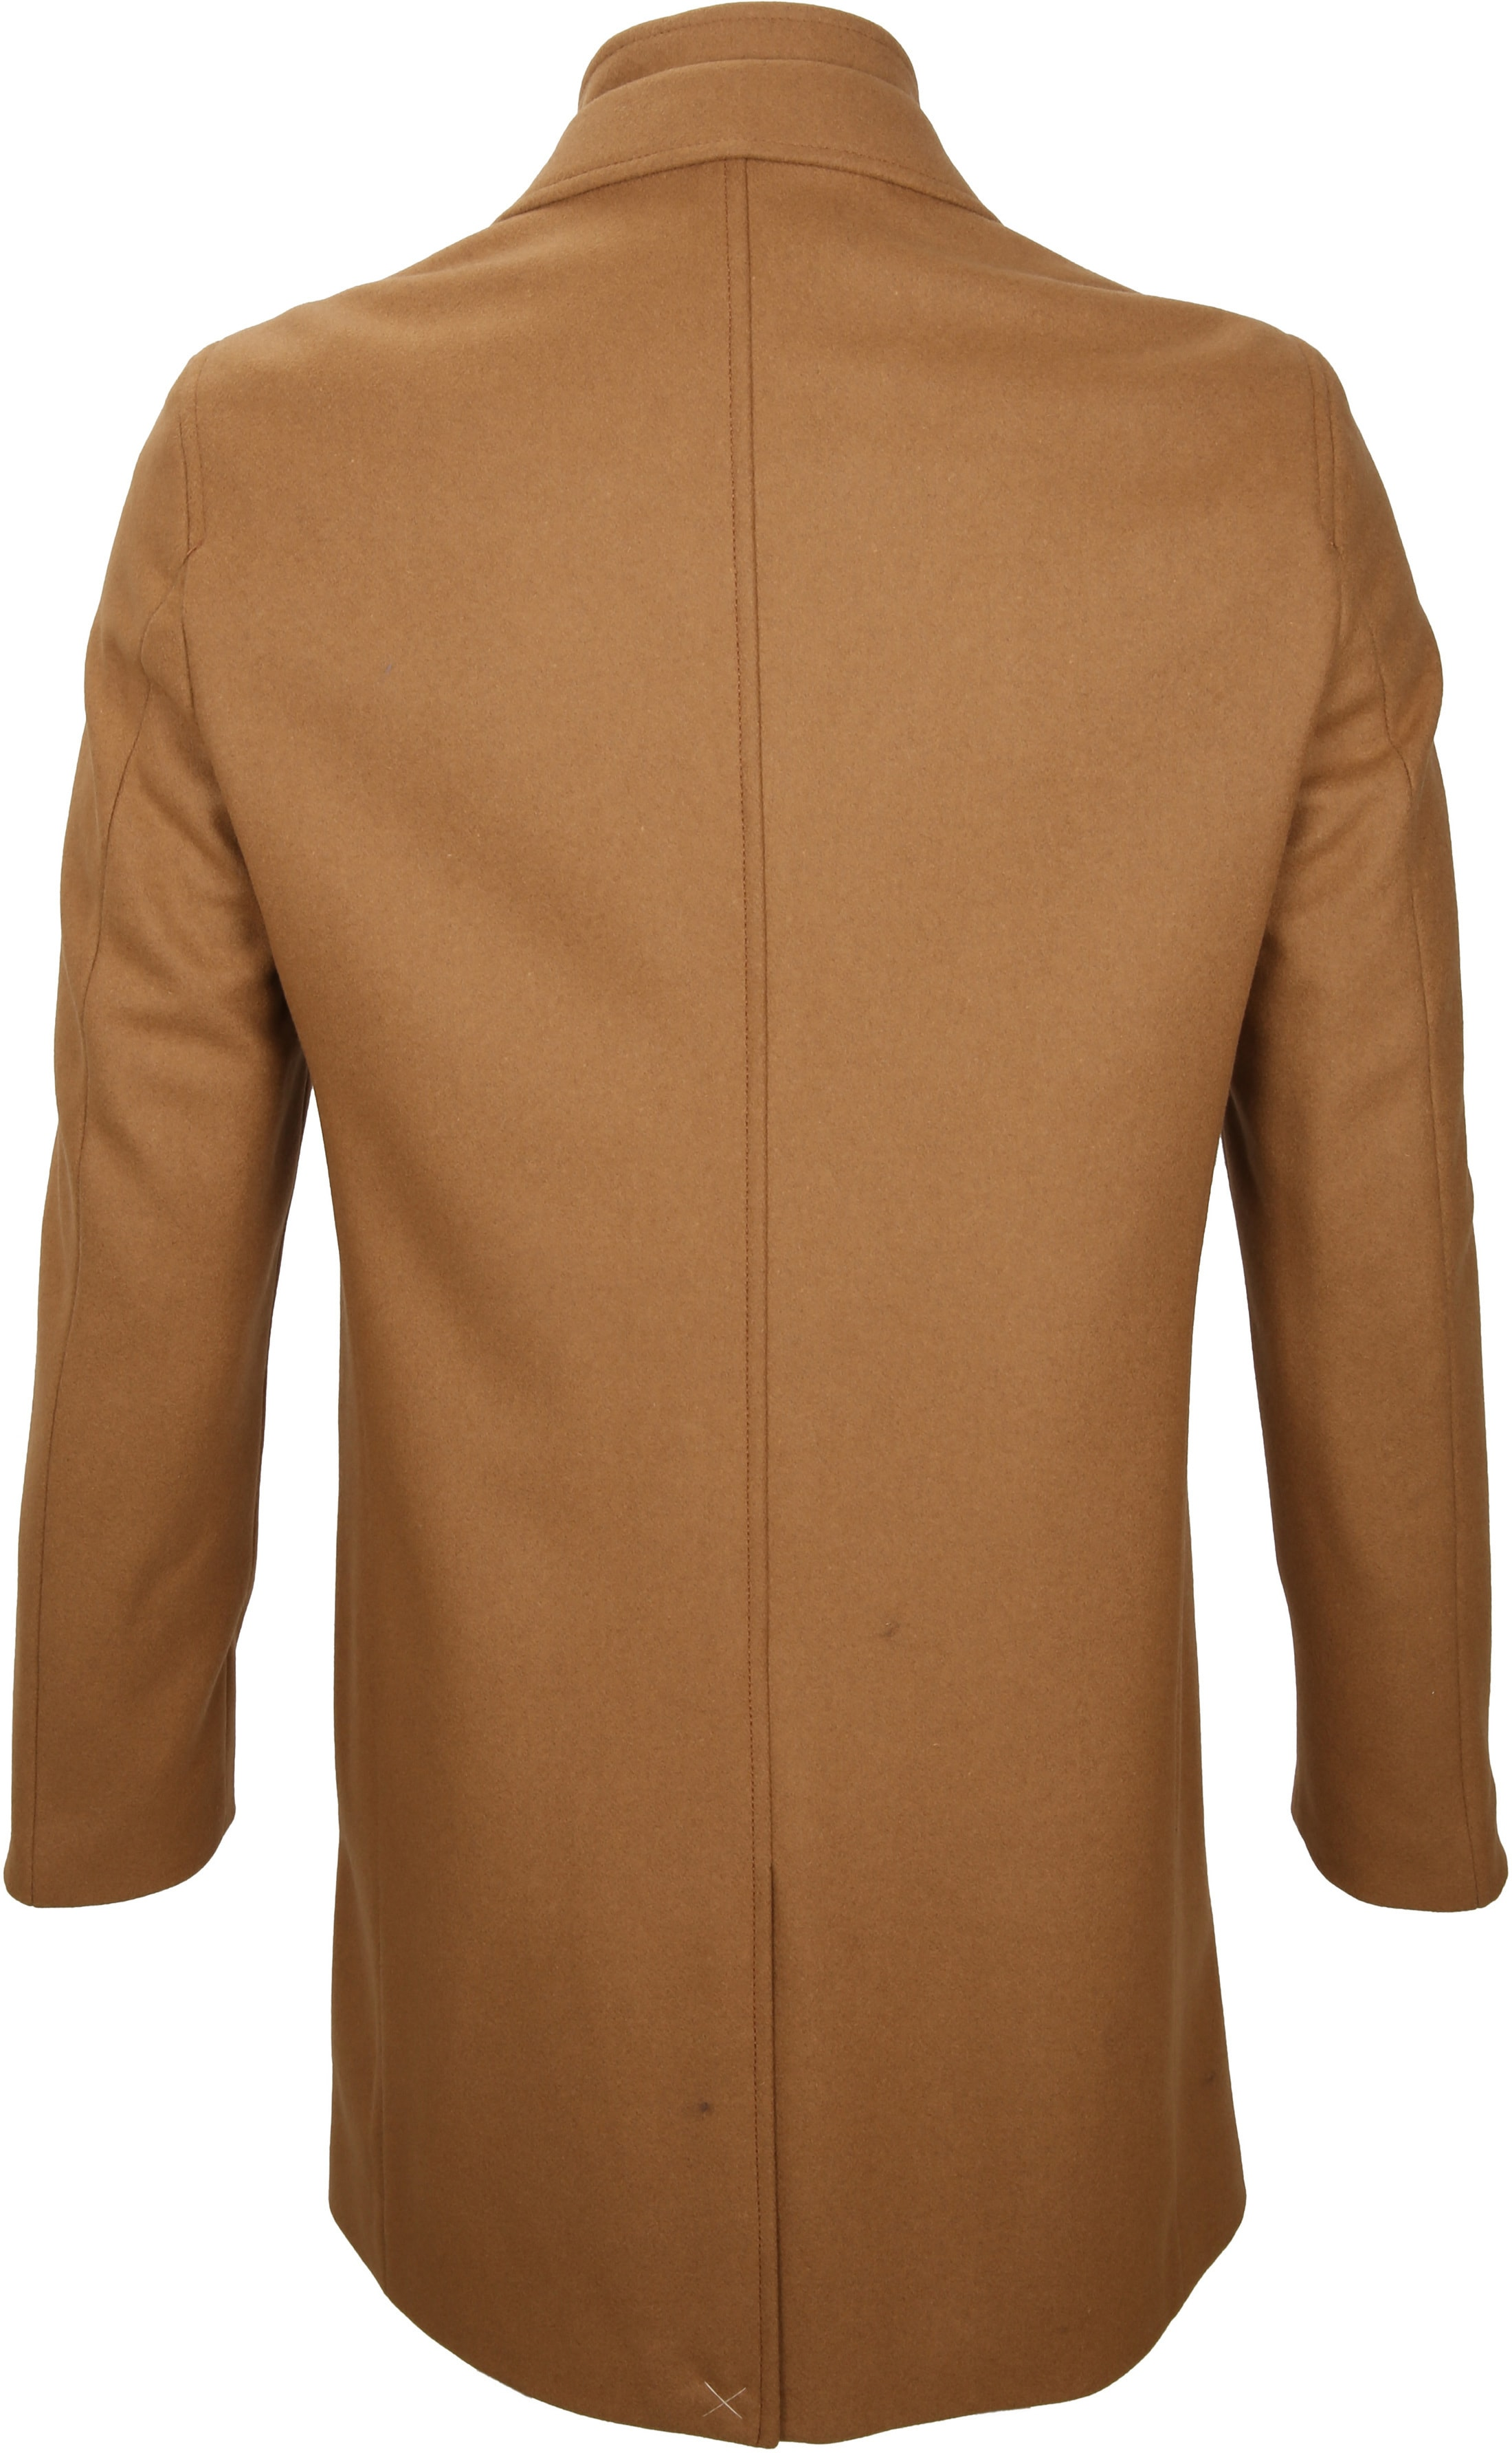 Suitable Coat Hans Melton Camel foto 6